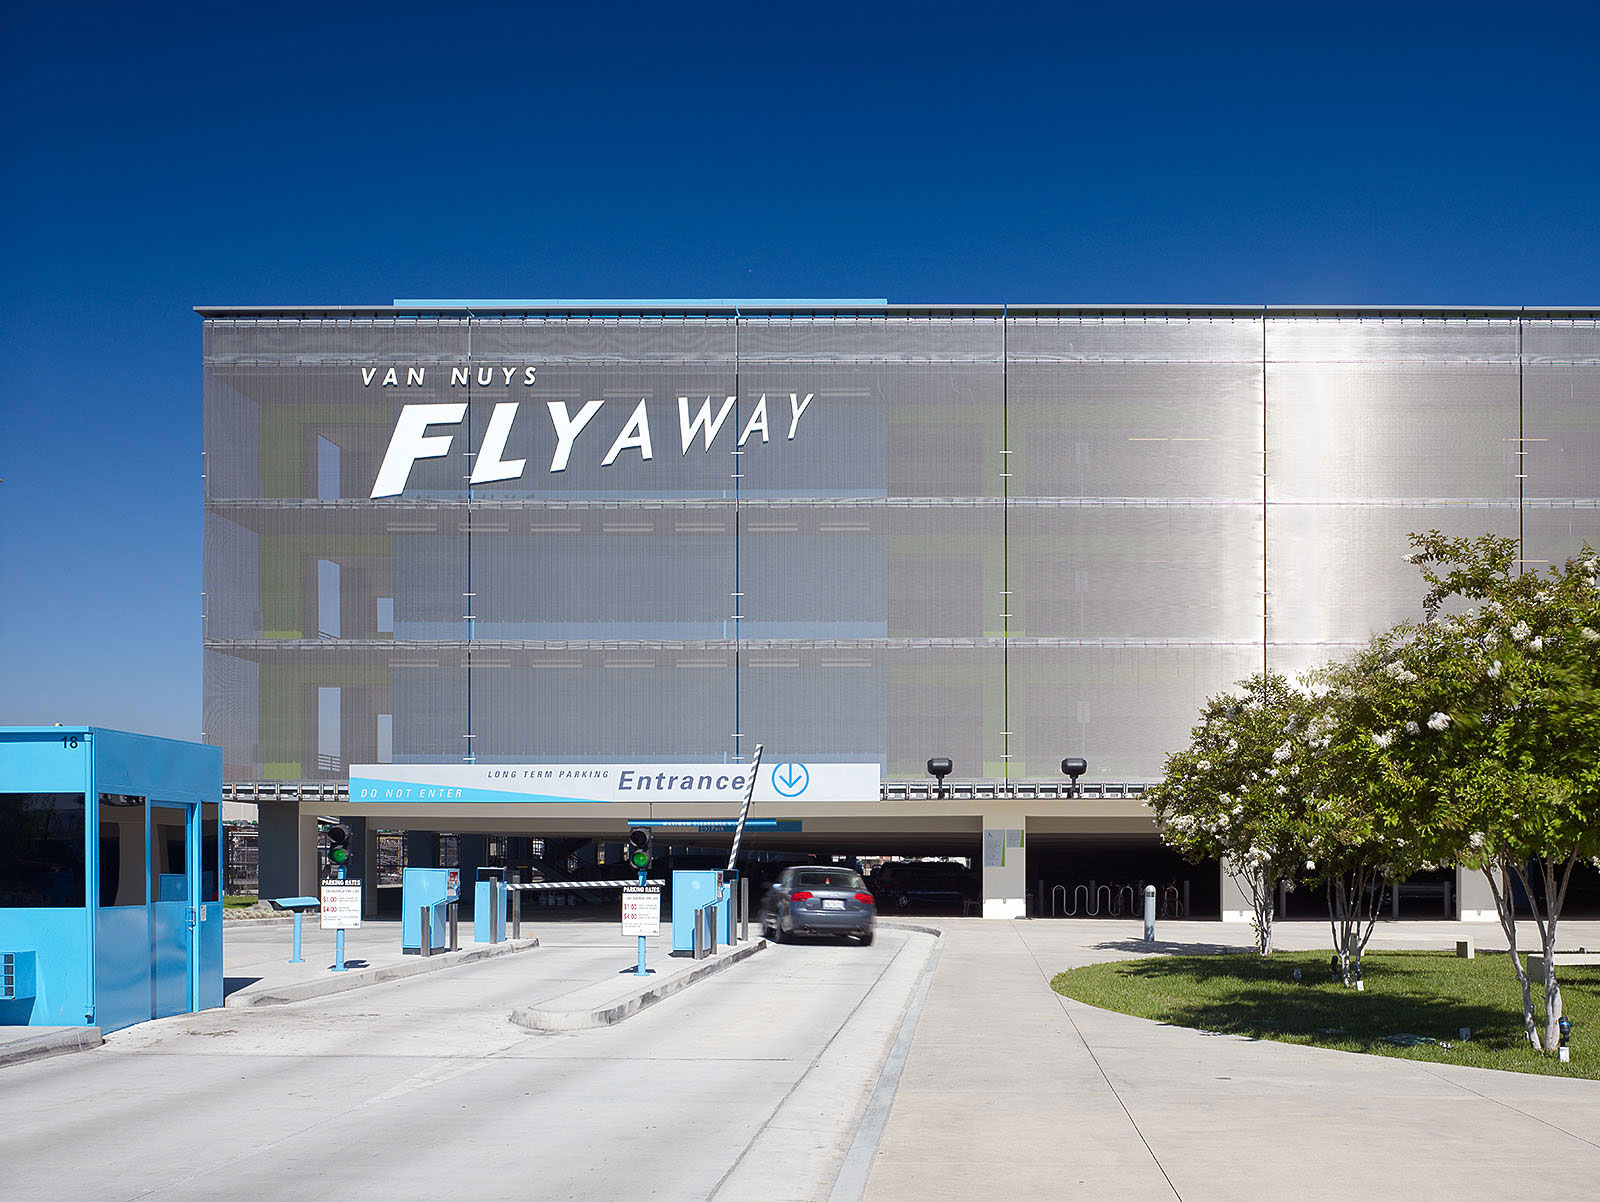 Van Nuys Flyaway Parking Garage, California, DMJM, Lago, GKD Metal Fabrics USA, Tim Griffith